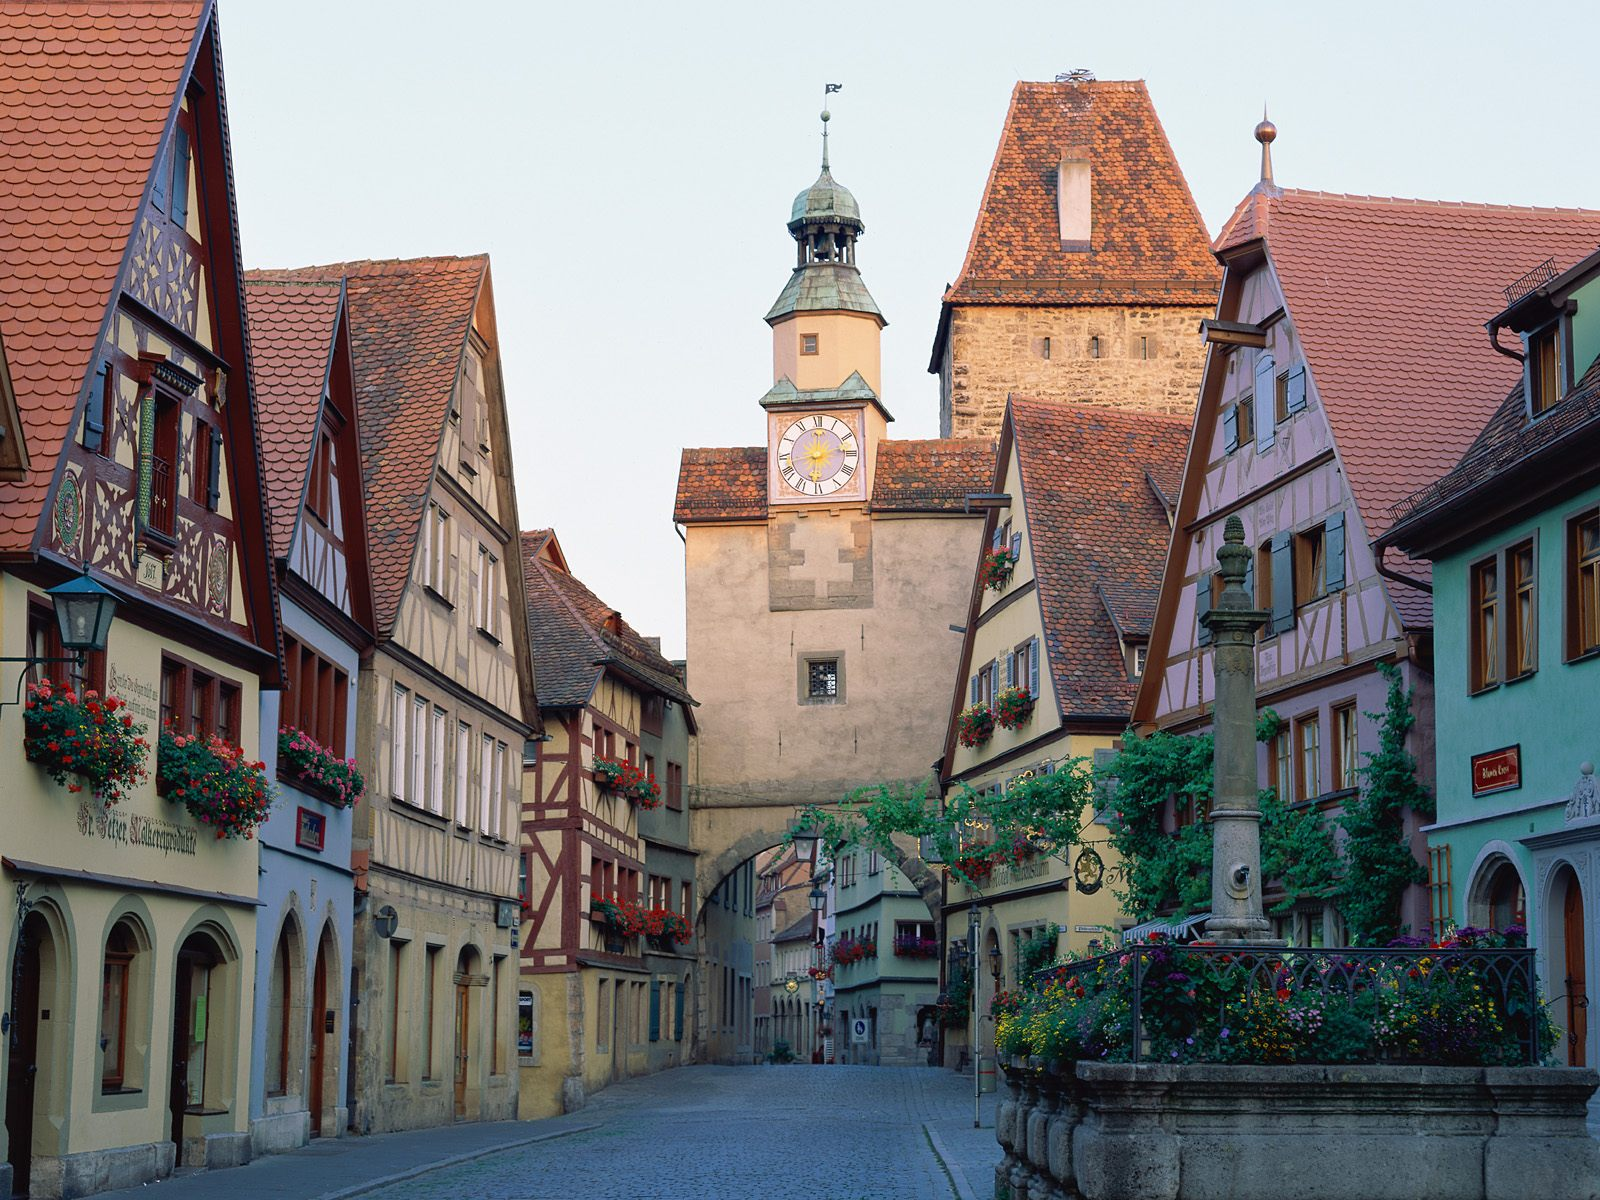 Rothenburg ob der Tauber Bavaria 1600 x 1200